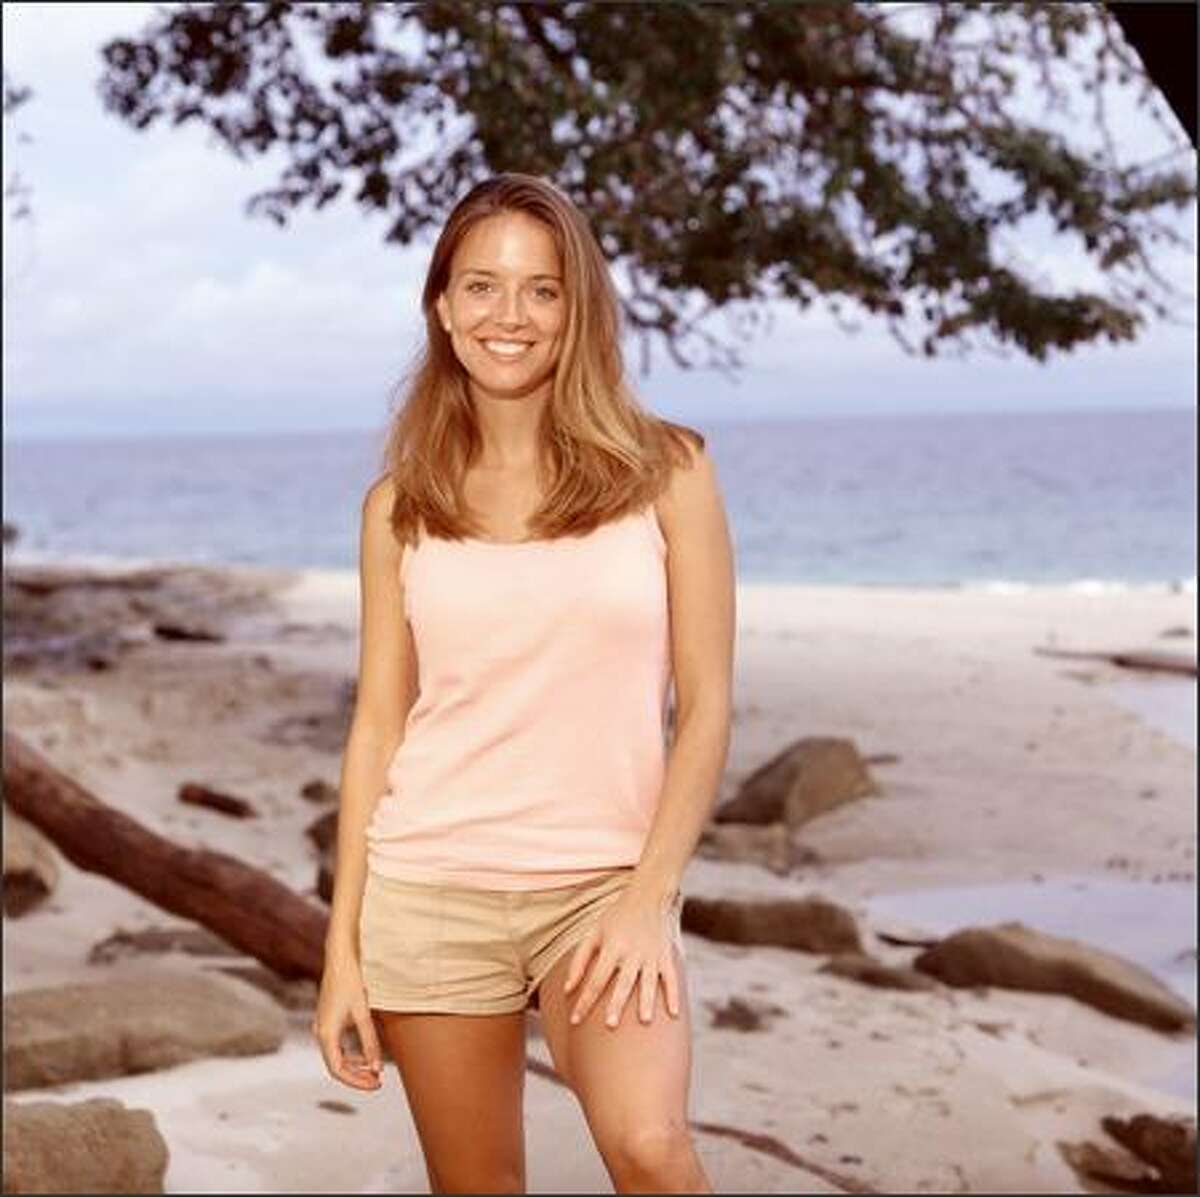 Amber Brkich (SURVIVOR: THE AUSTRALIAN OUTBACK) is one of the 18 castaways participating in SURVIVOR: ALL-STARS, set to premiere on CBS on Feb. 1.